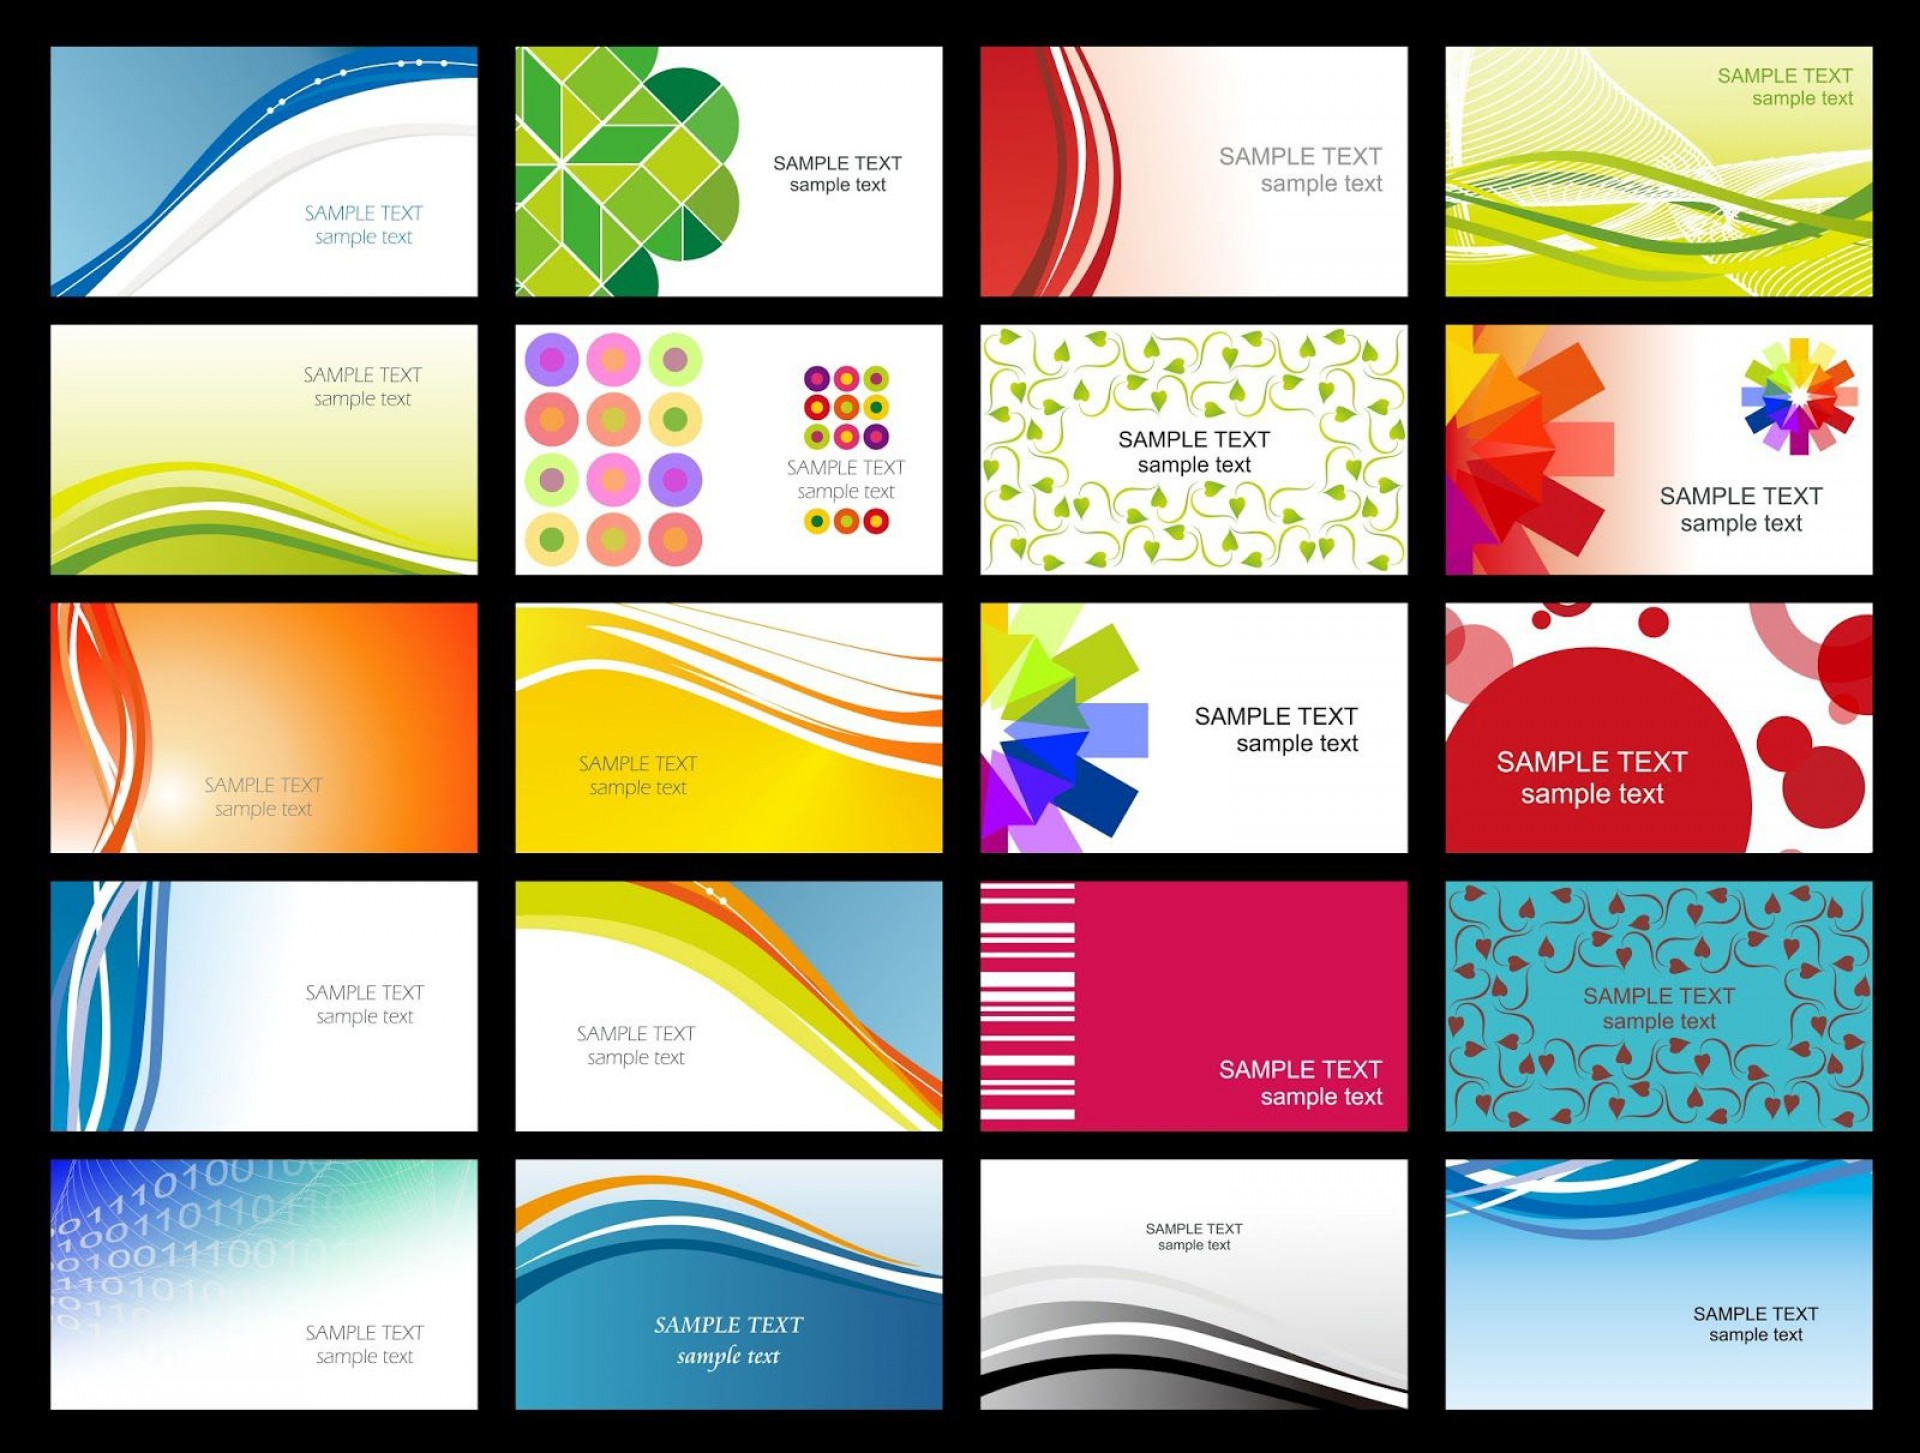 009 Formidable Free Printable Blank Busines Card Template For Word High Def 1920